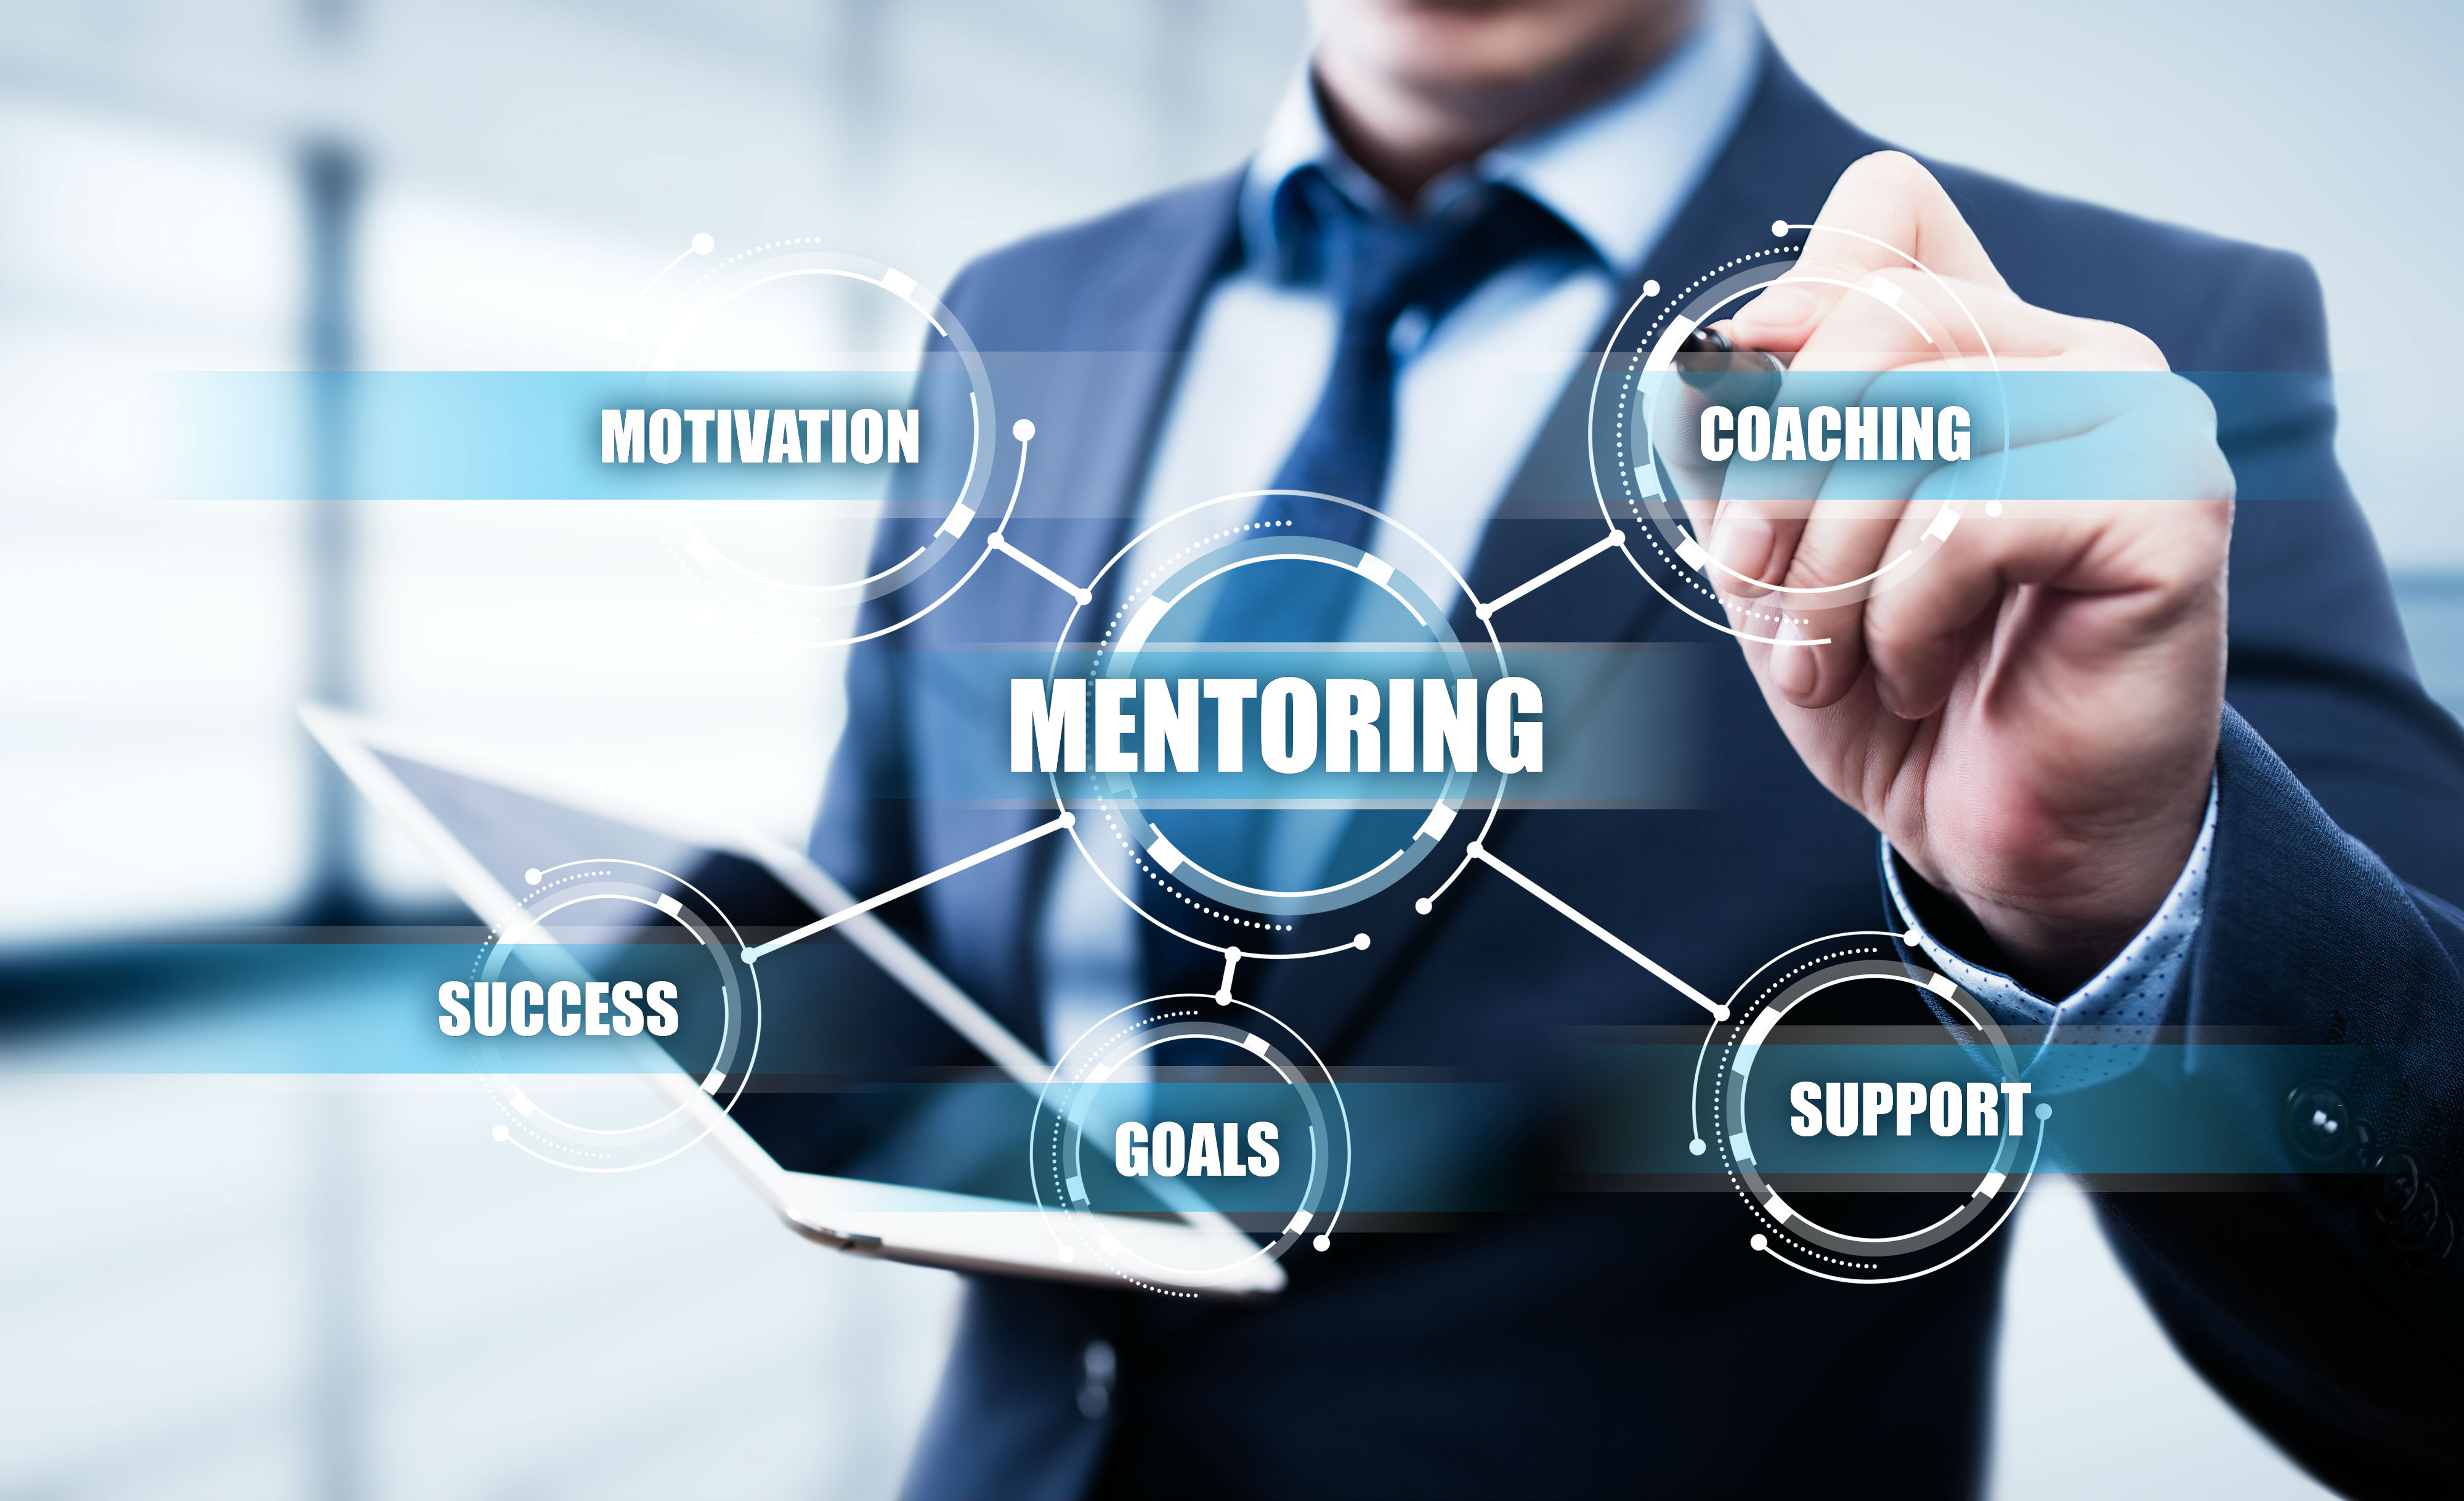 Get Most Out of Leaders Through Leadership Coaching